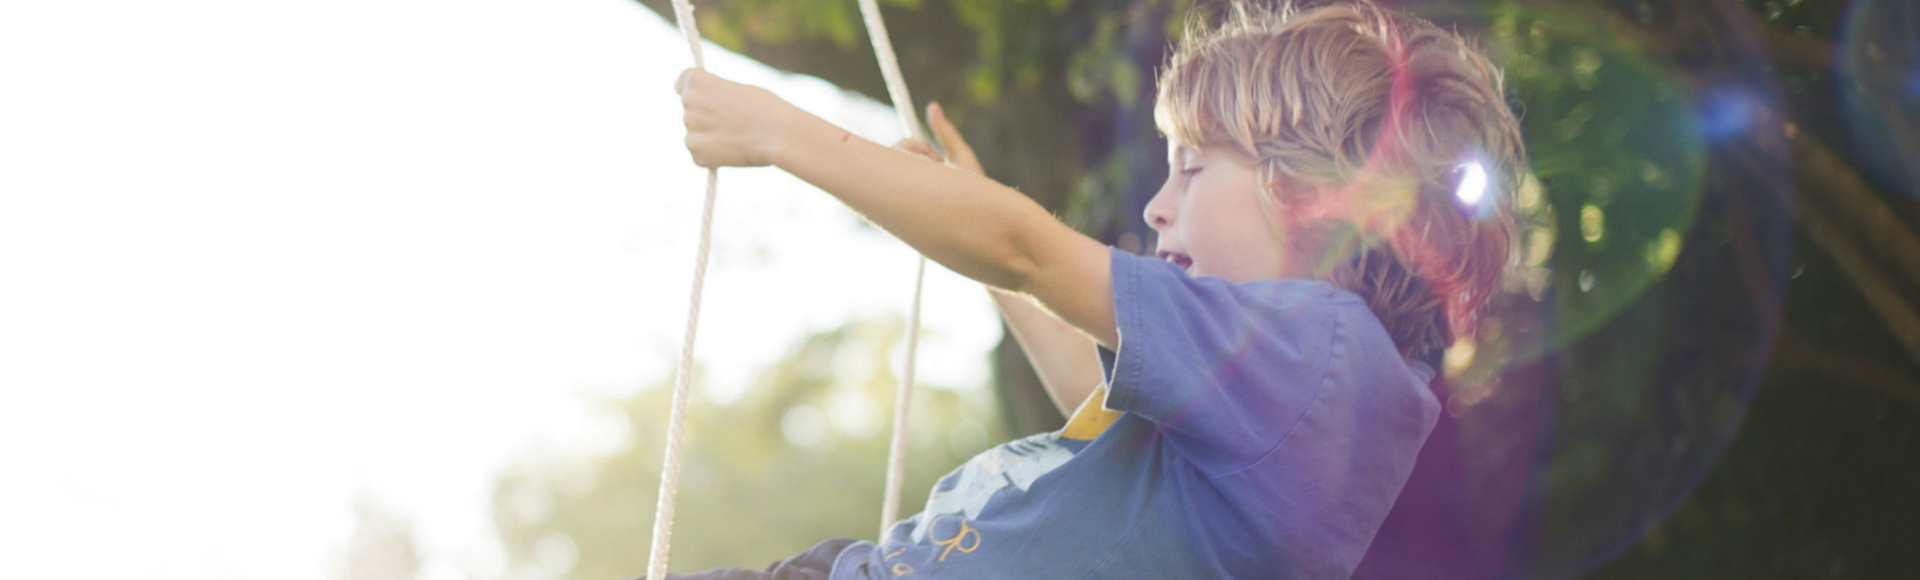 residential boy on swing 1920x580